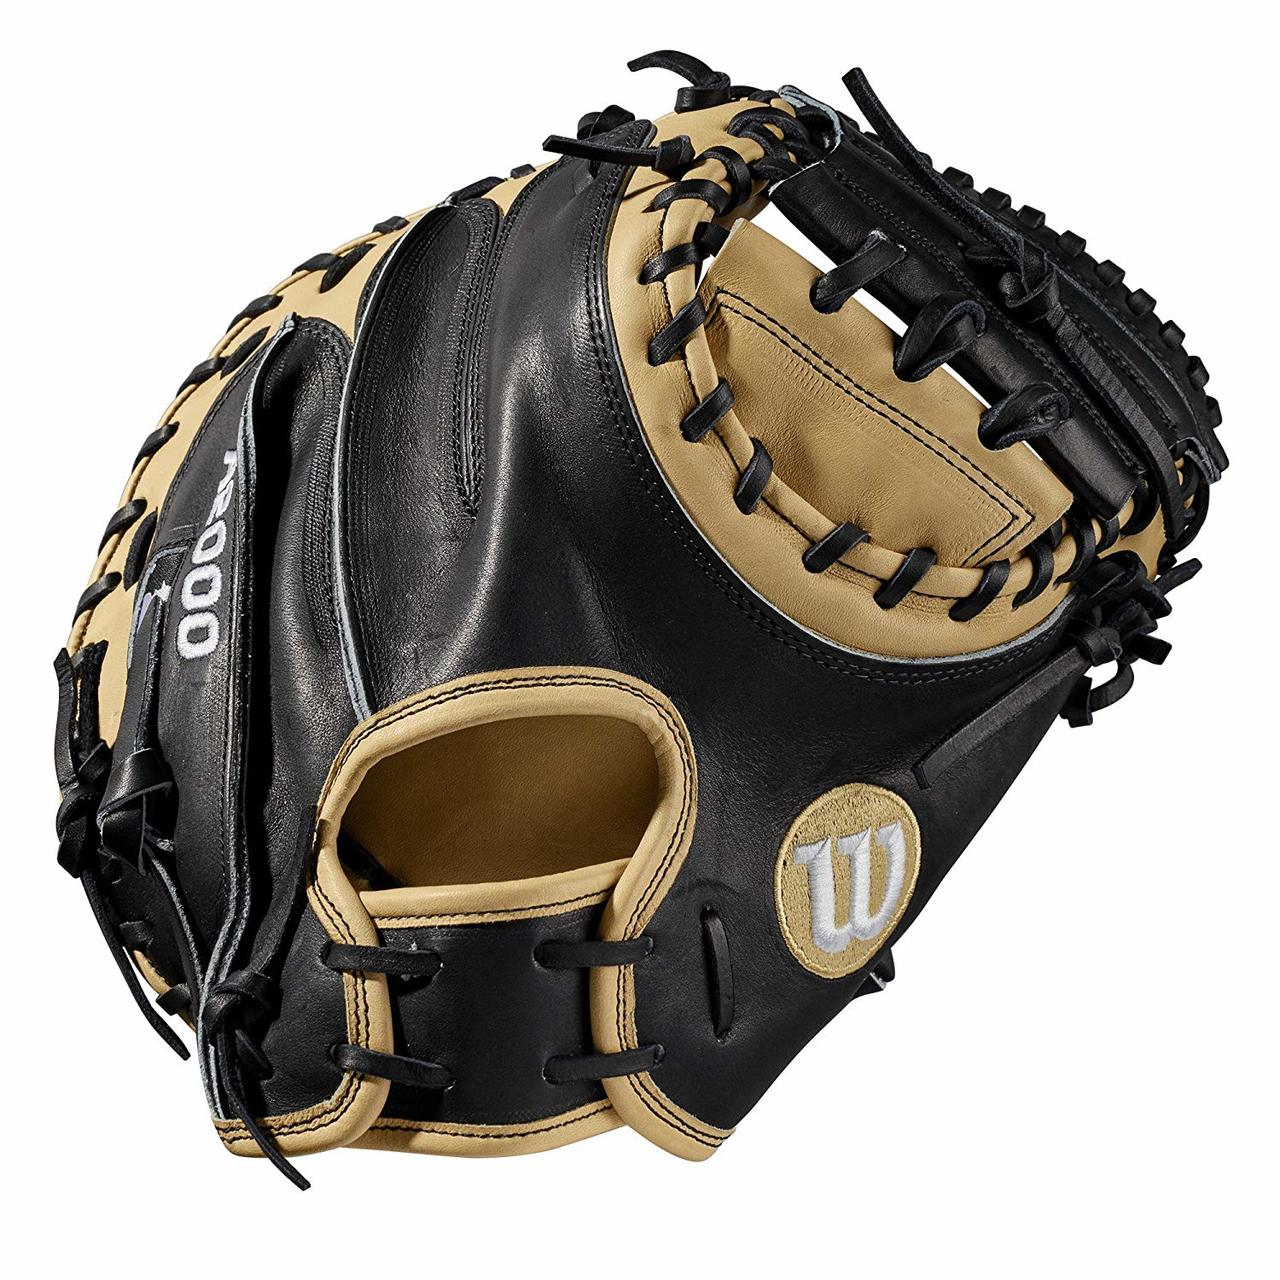 wilson-a2000-cm33-catchers-mitt-33-right-hand-throw-2019 A20RB19CM33-RightHandThrow Wilson 887768702038 Catchers model; half moon web Extended palm MLB most popular catchers